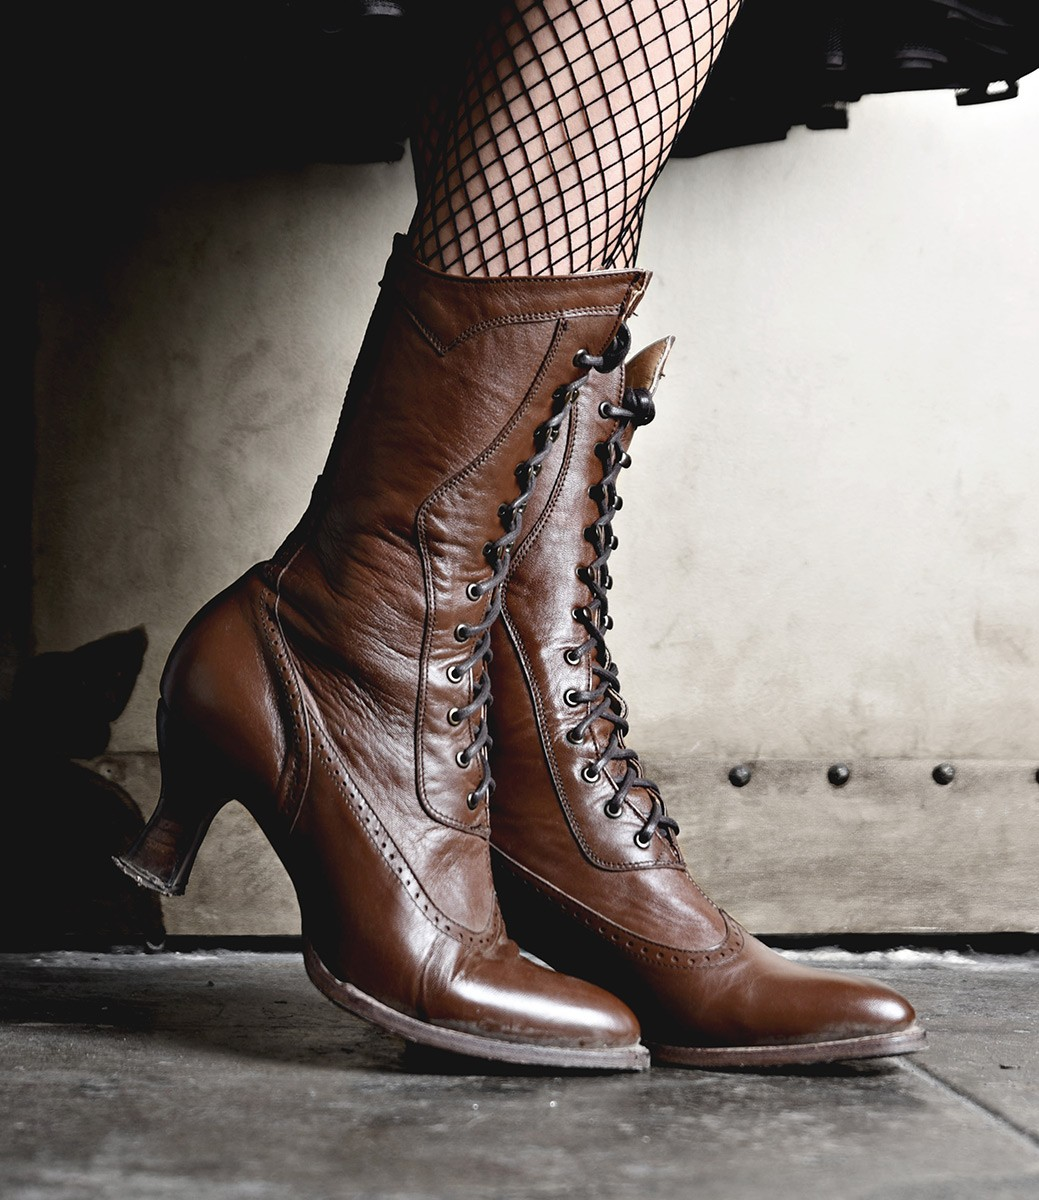 Vintage Boots, Granny Boots, Retro Boots Modern Victorian Lace Up Leather Boots in Cognac $255.00 AT vintagedancer.com